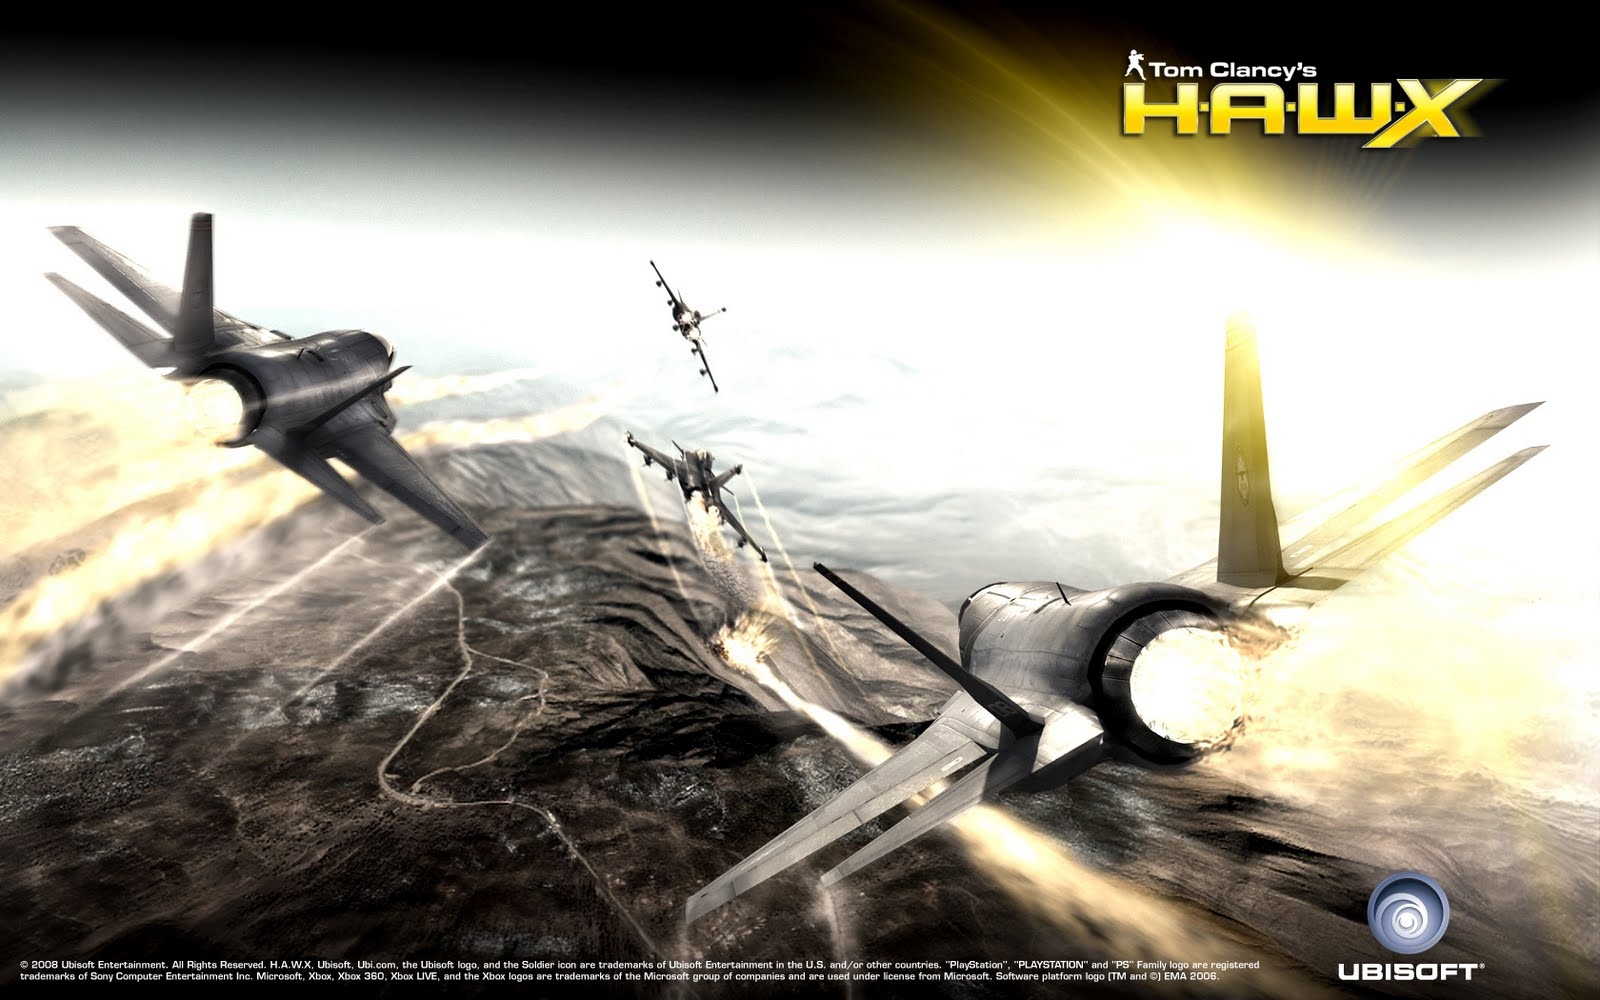 1600x1000 - Tom Clancy's H.A.W.X HD Wallpapers 5